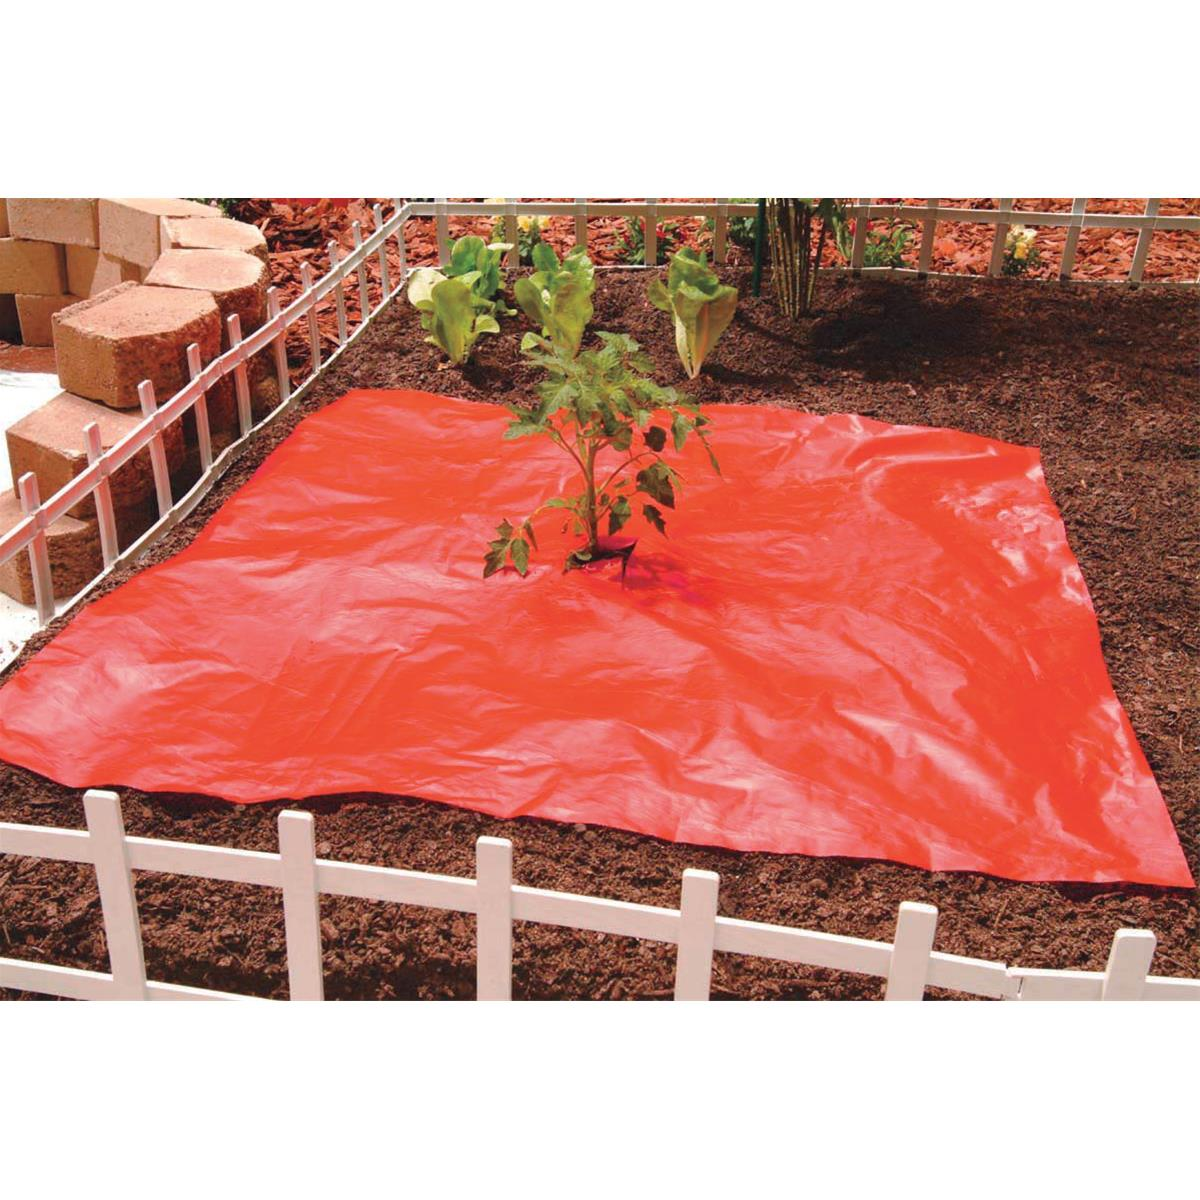 Perforated Red Mulch Film